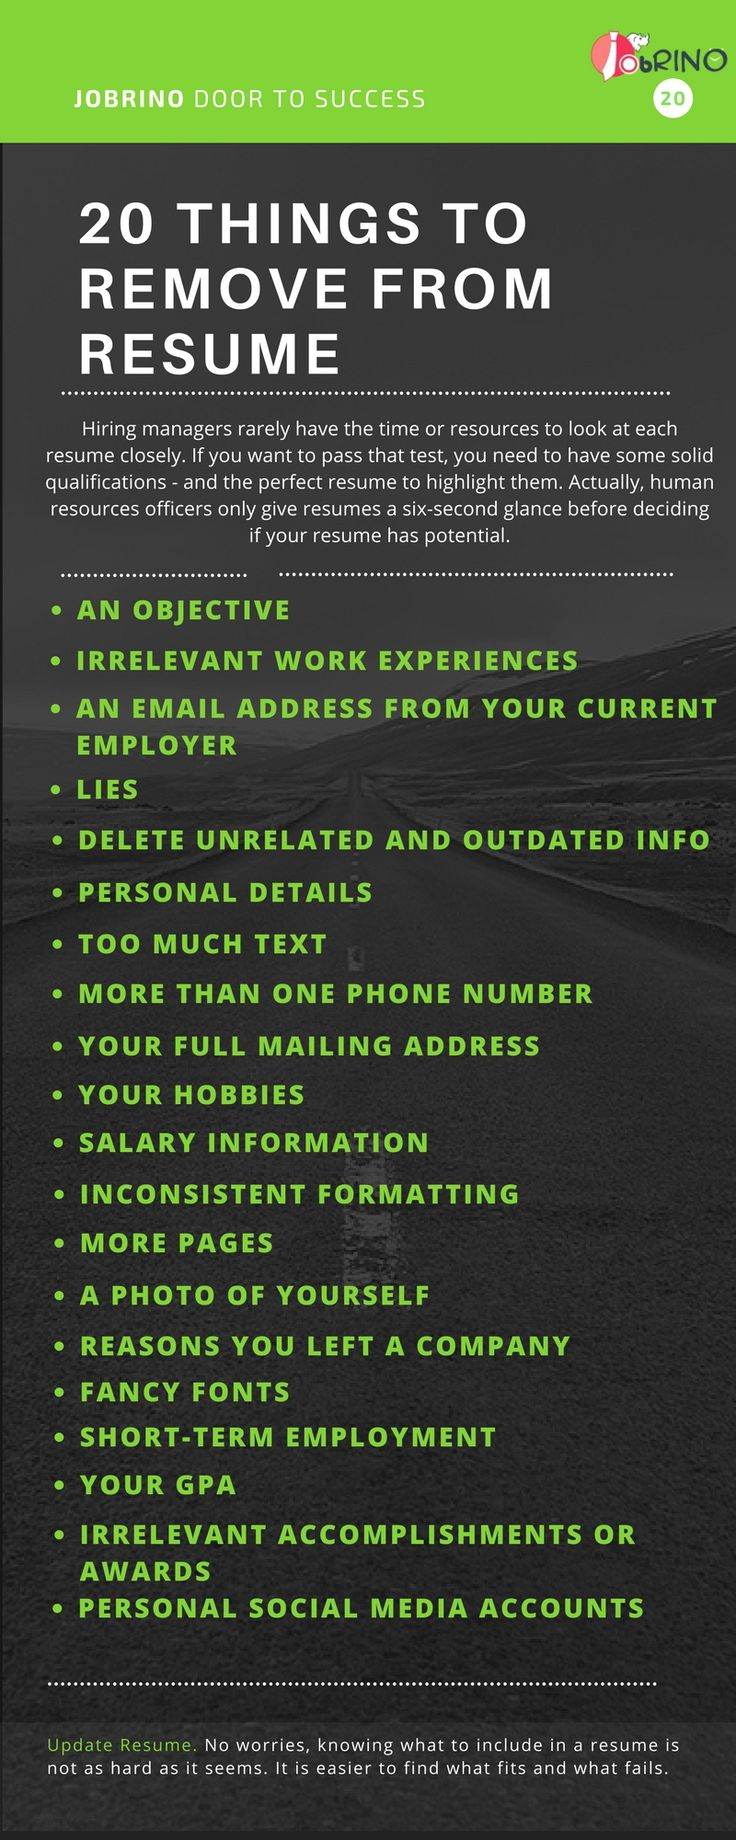 20 Things to remove from the #resume . Here are some essential points to be kept in mind and make or update your #resume .Get free tips in how to write an effective resume for finding a #job